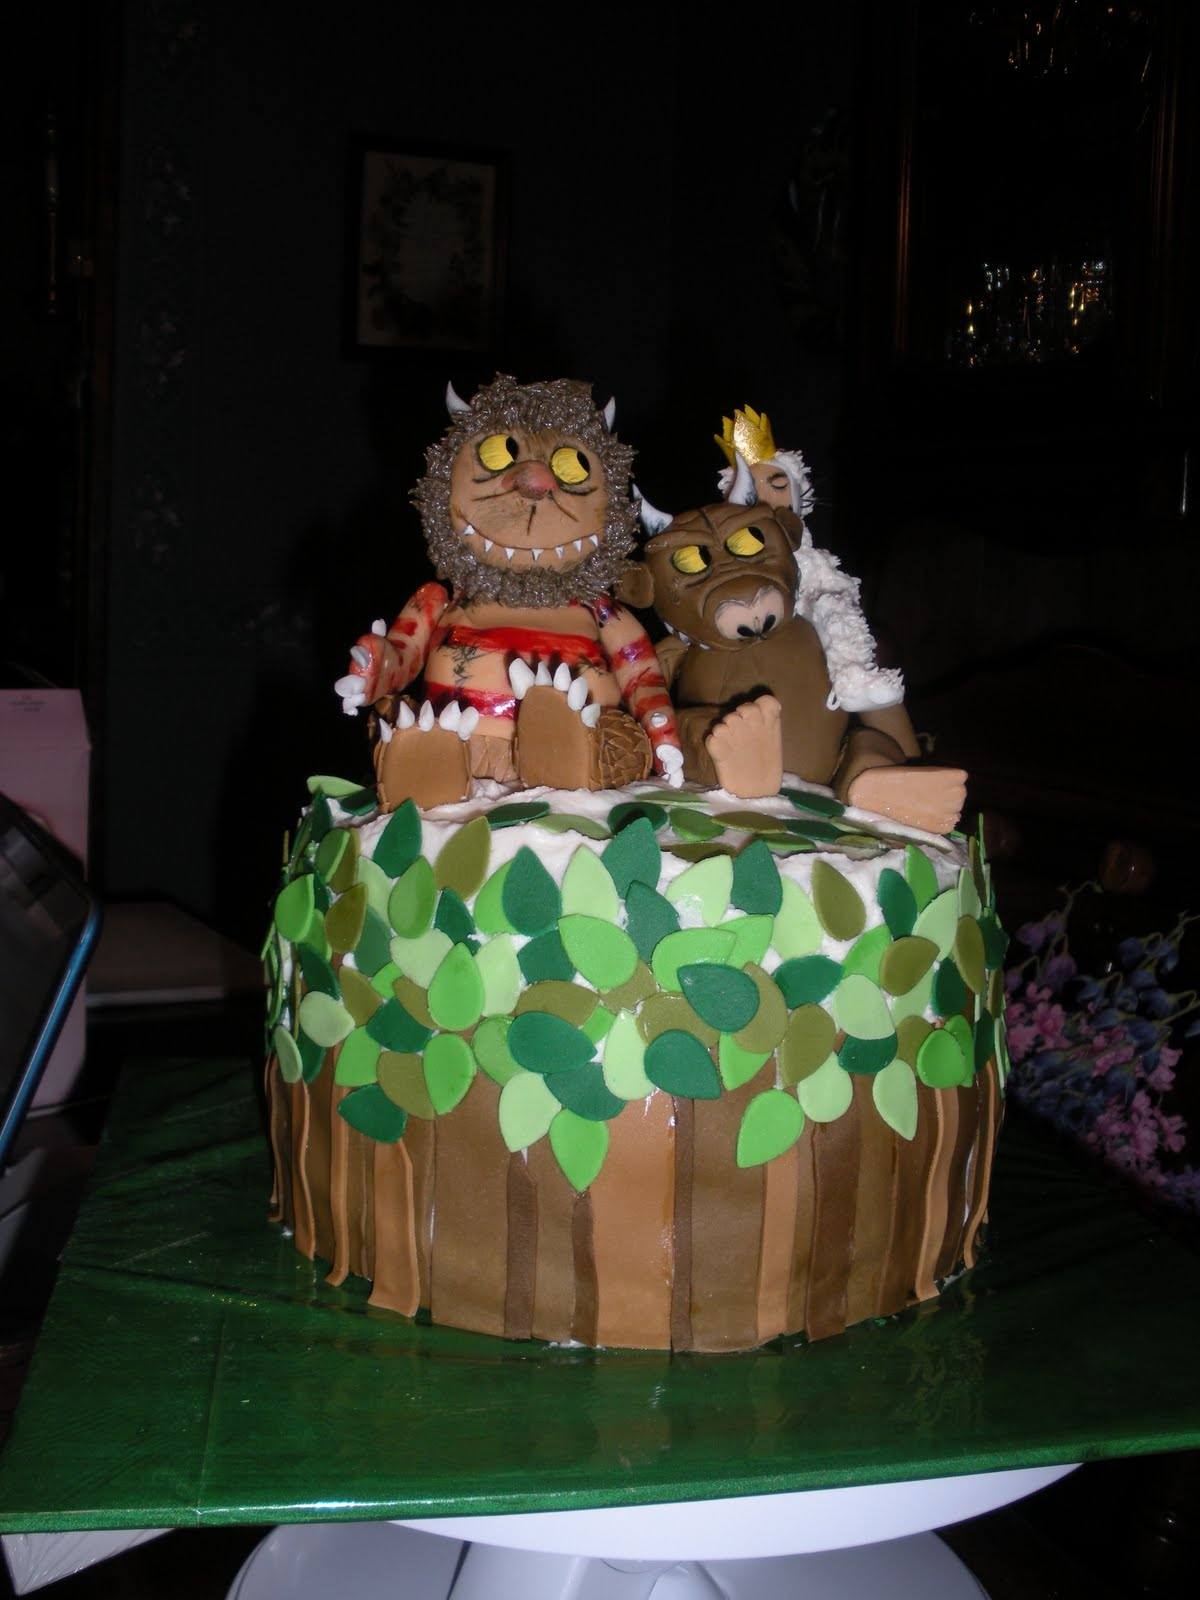 Beachy Cakes Edible Books Where The Wild Things Are